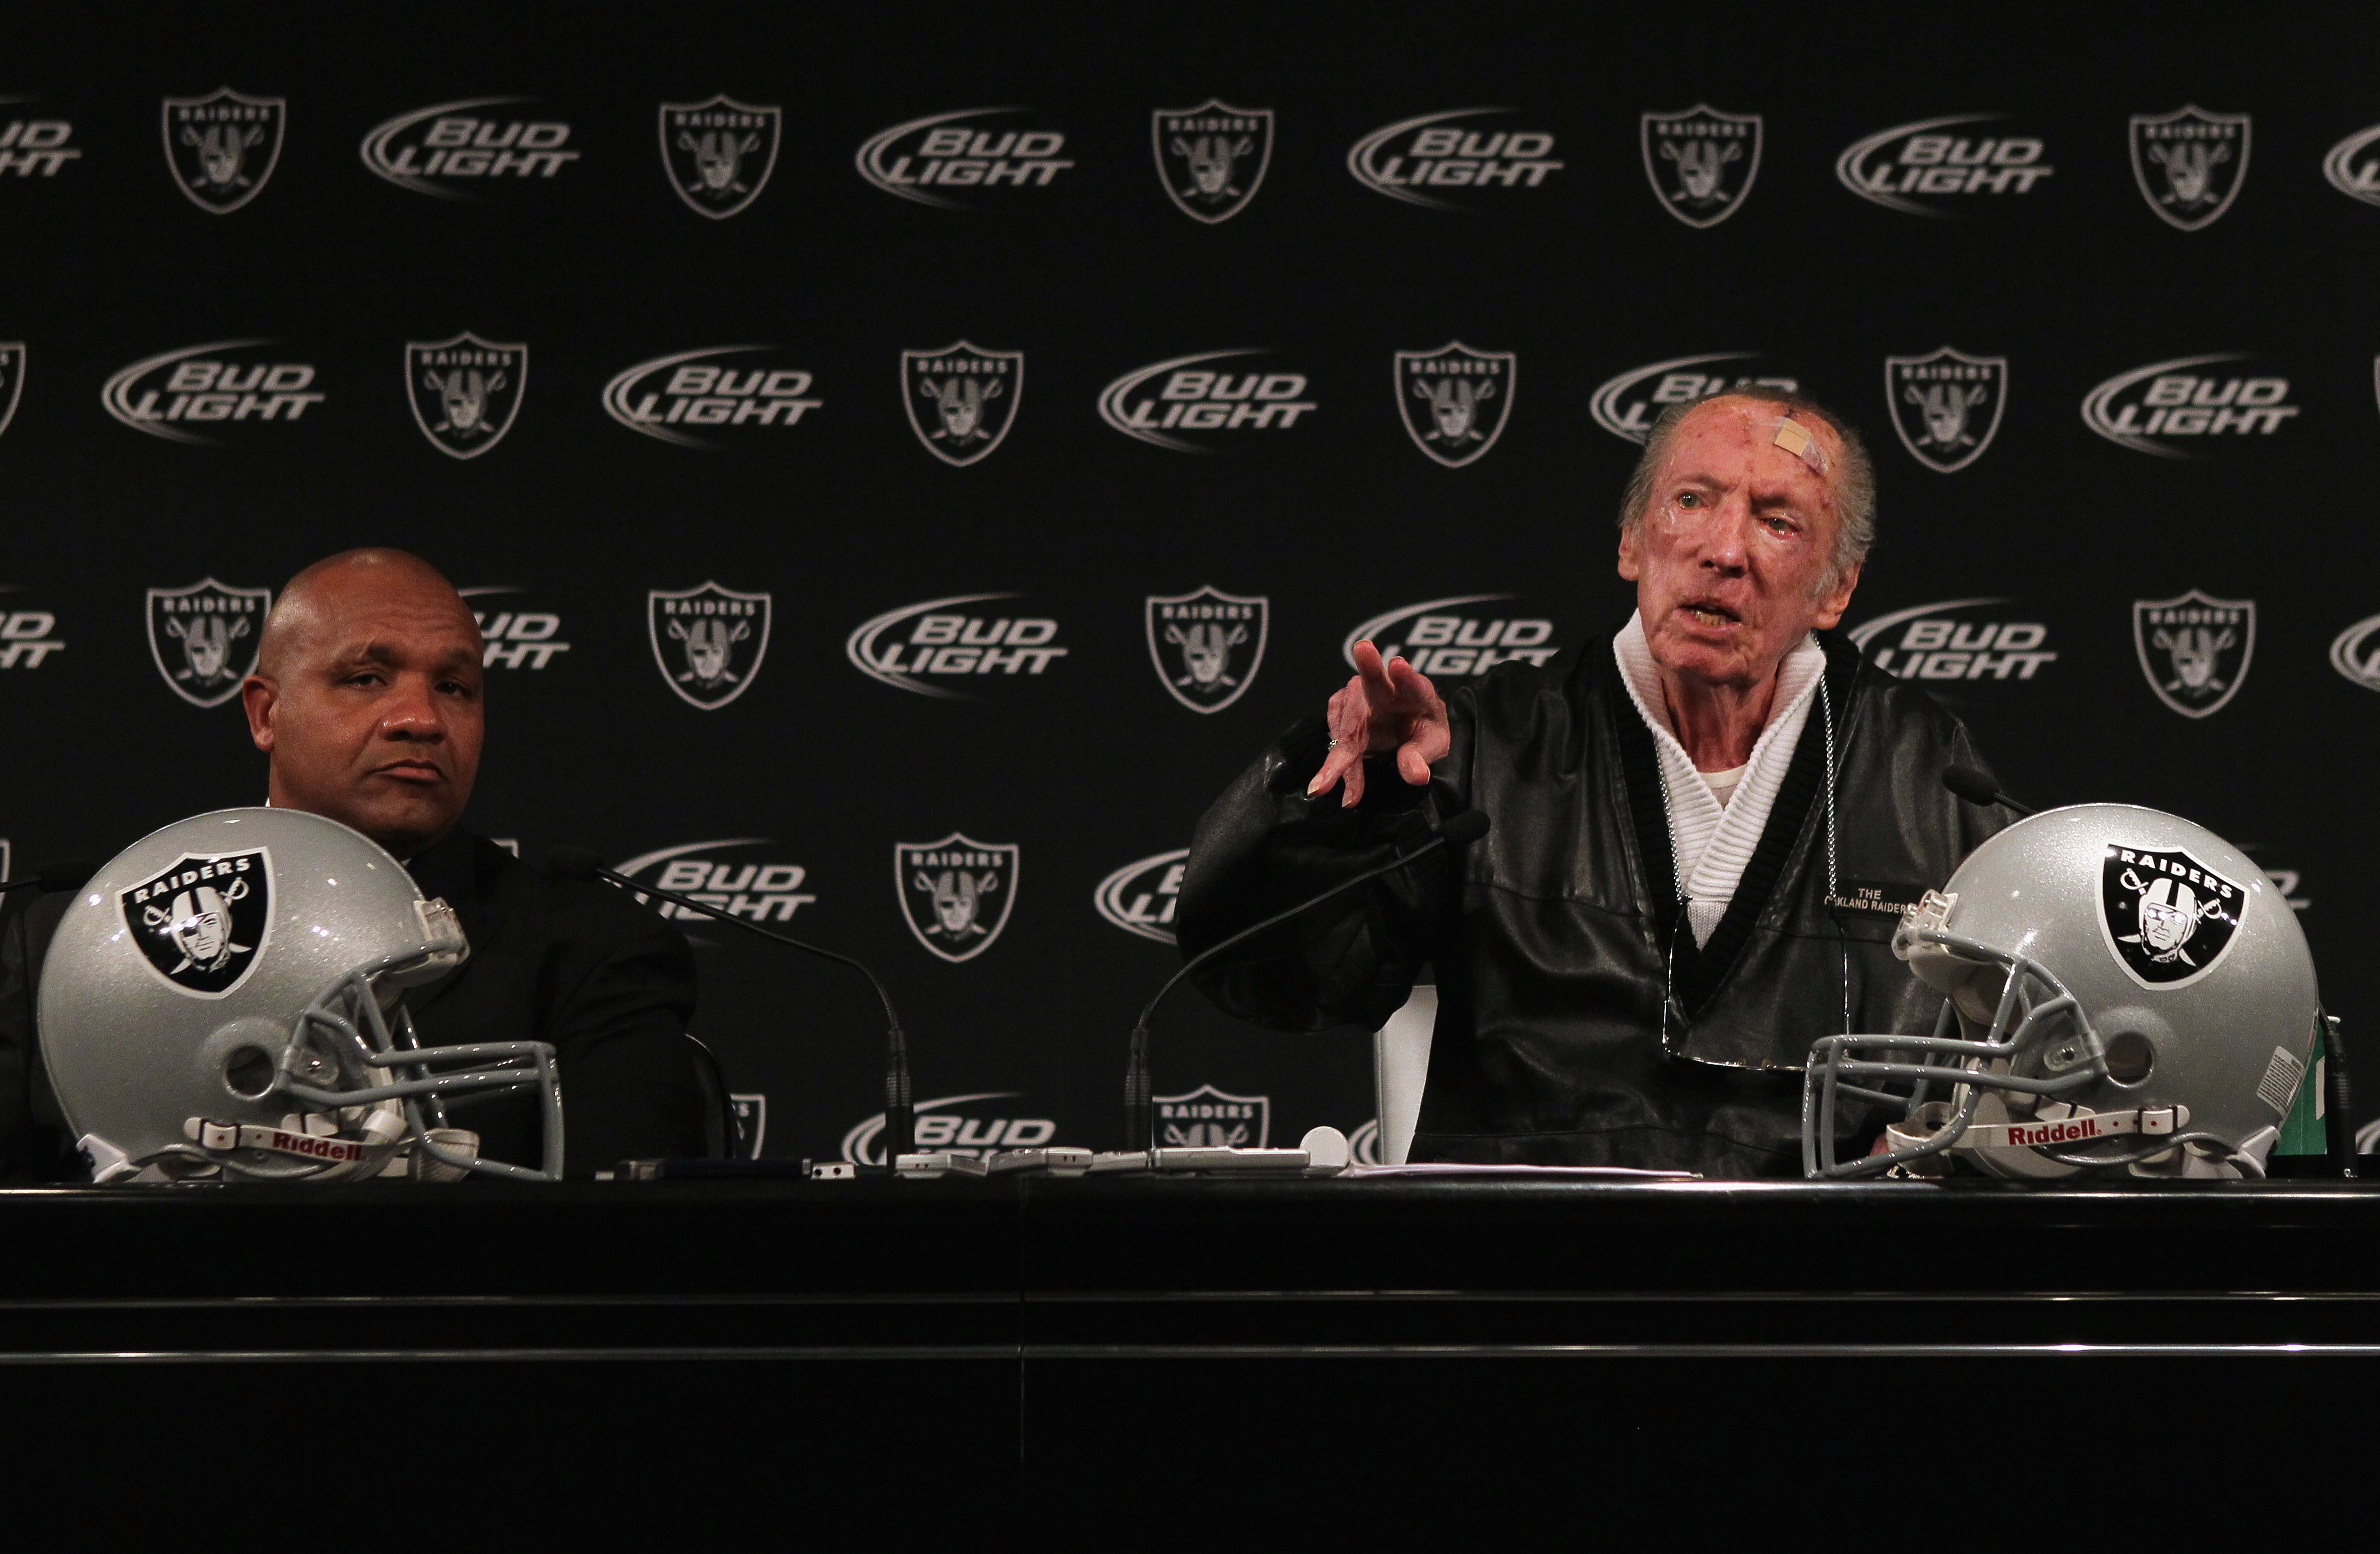 ALAMEDA, CA - JANUARY 18:  New Oakland Raiders coach Hue Jackson (L) looks on as Raiders owner Al Davis speaks during a press conference on January 18, 2011 in Alameda, California. Hue Jackson was introduced as the new coach of the Oakland Raiders, replac